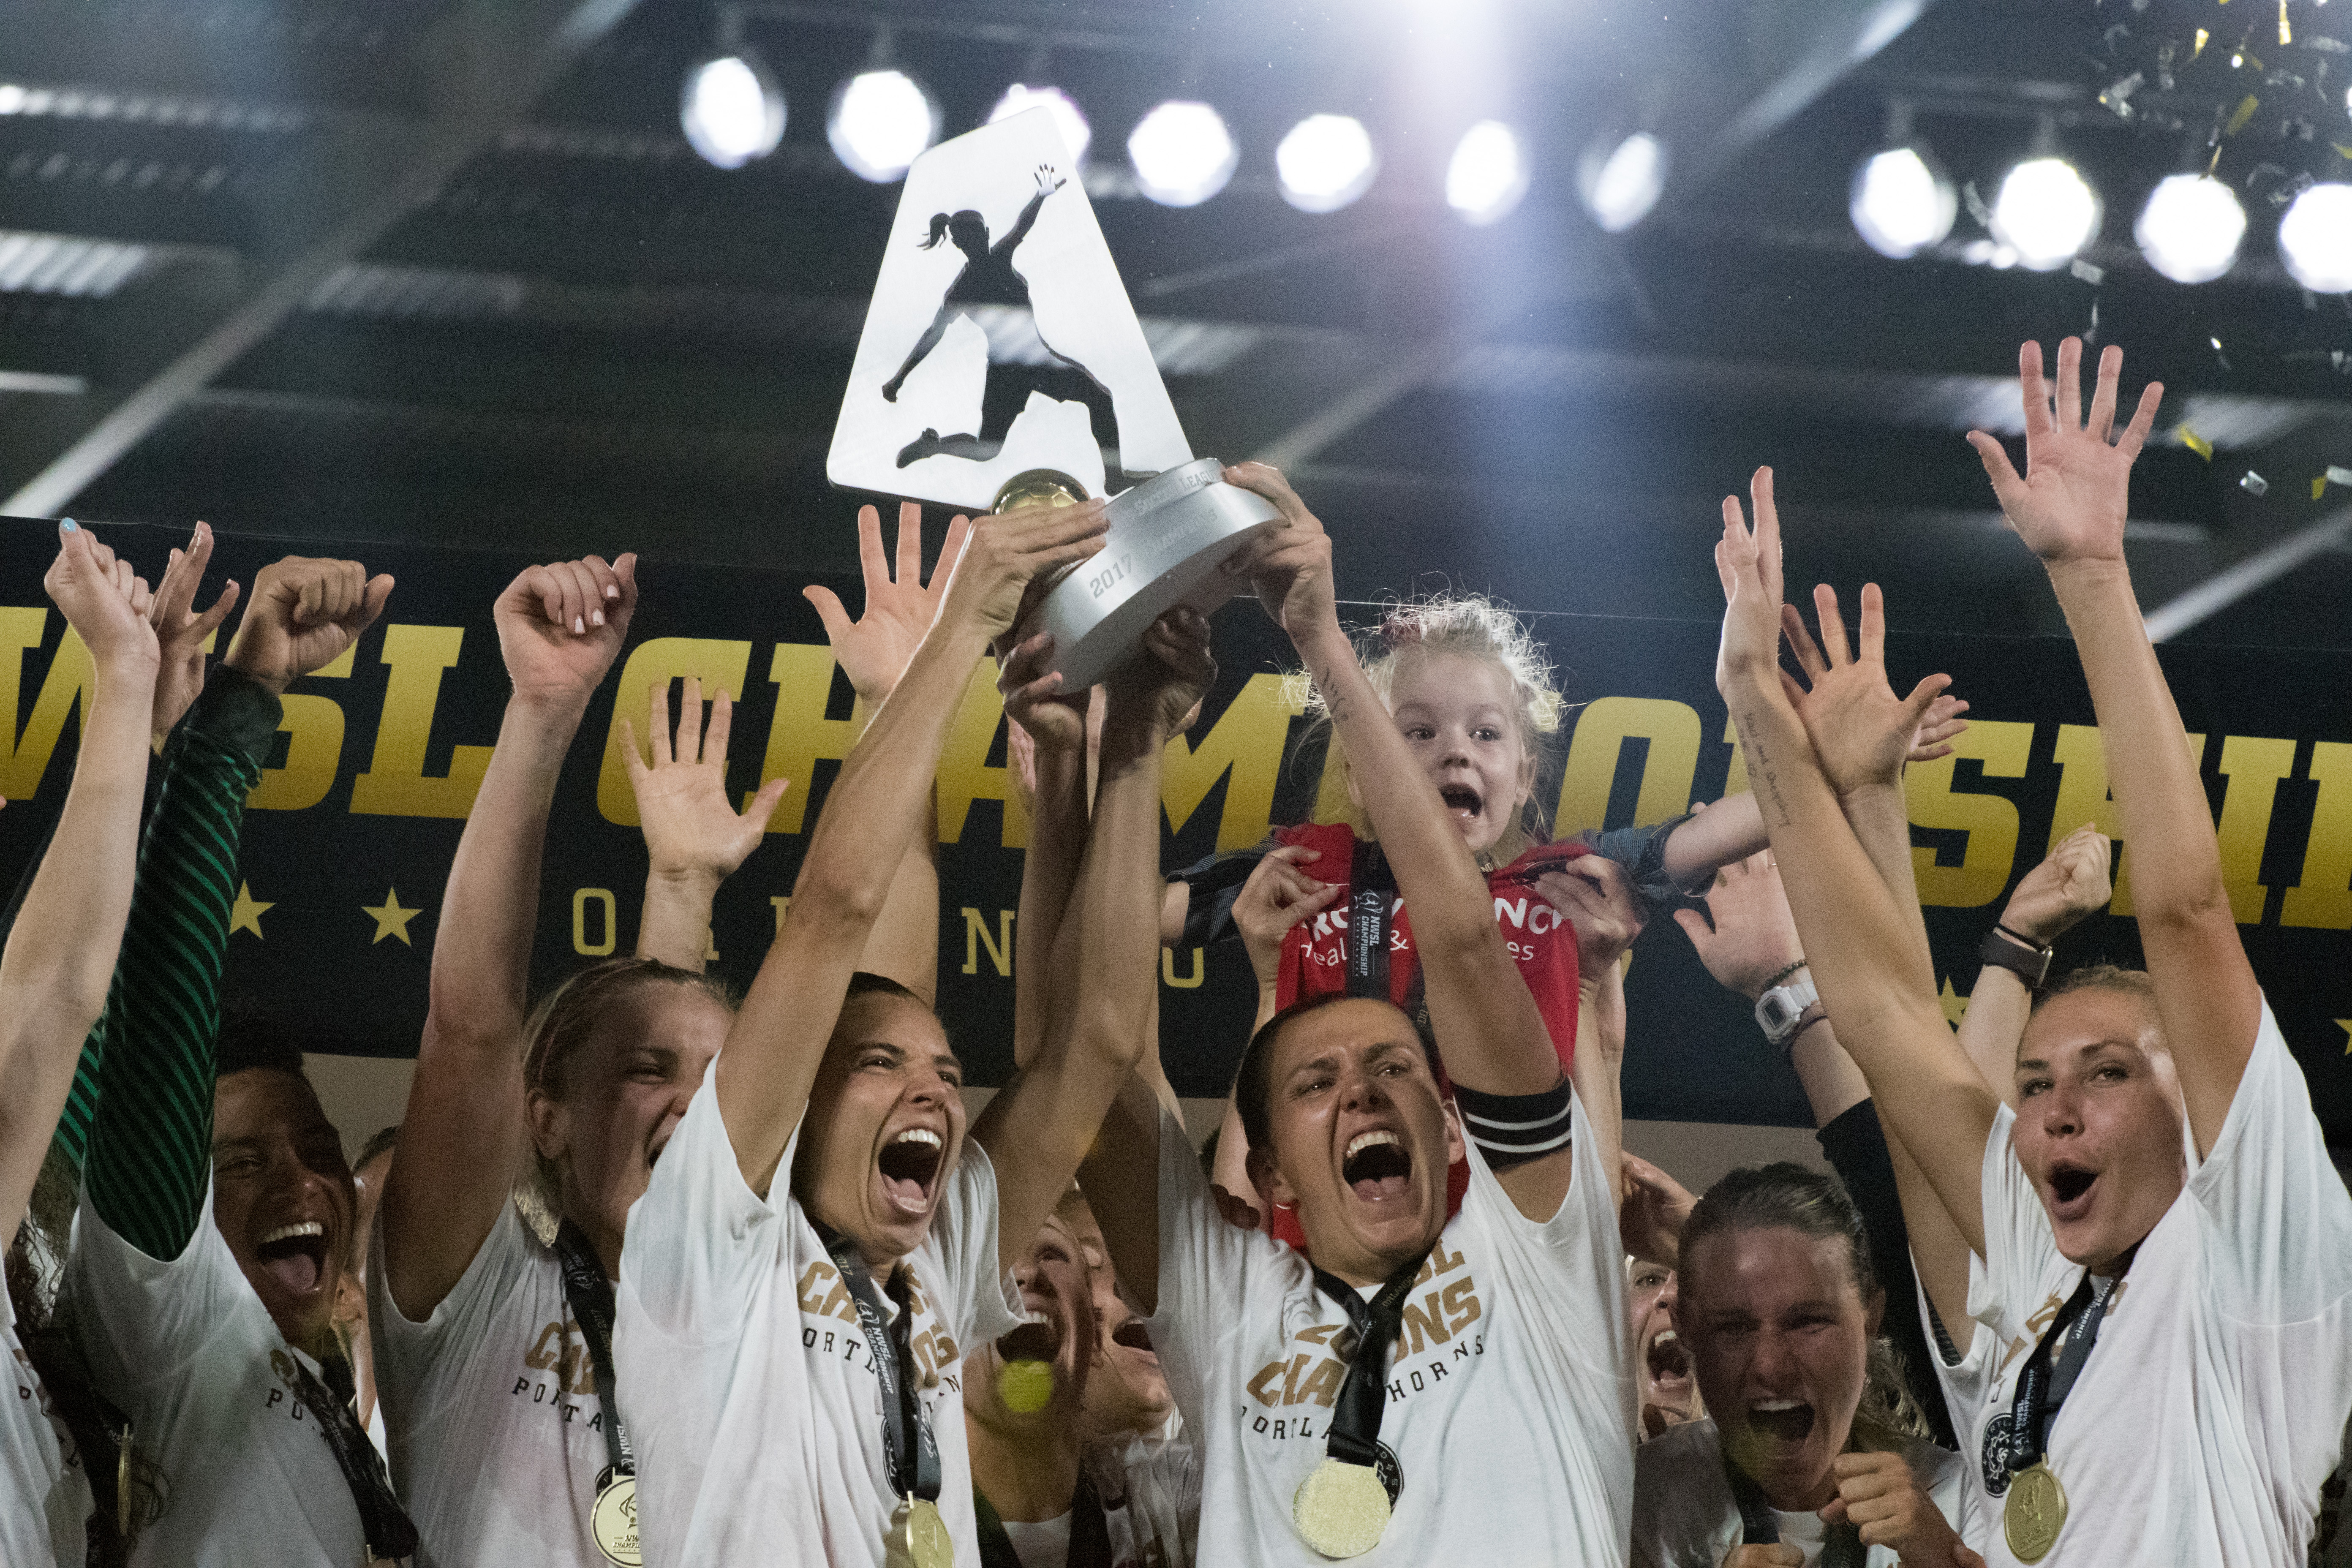 ANOTHER TROPHY FOR ROSE CITY [photos]